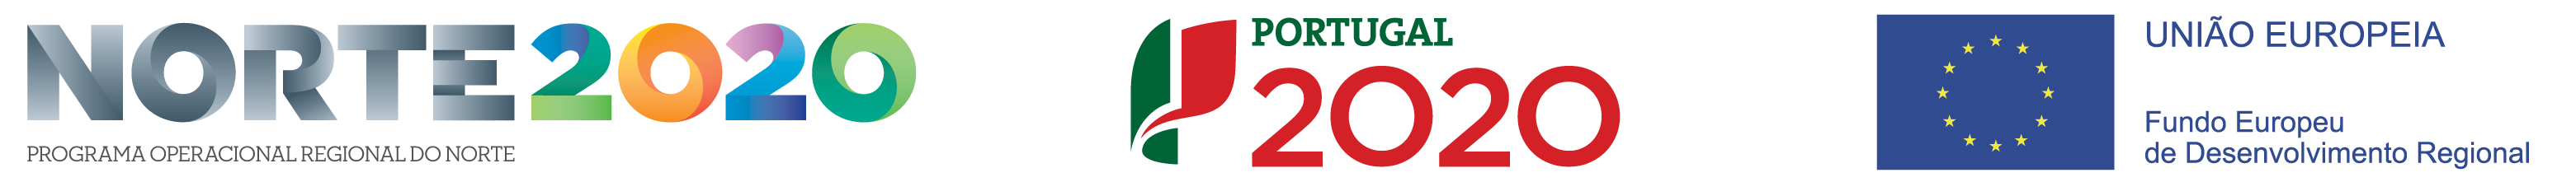 norte2020_portugal2020_ue